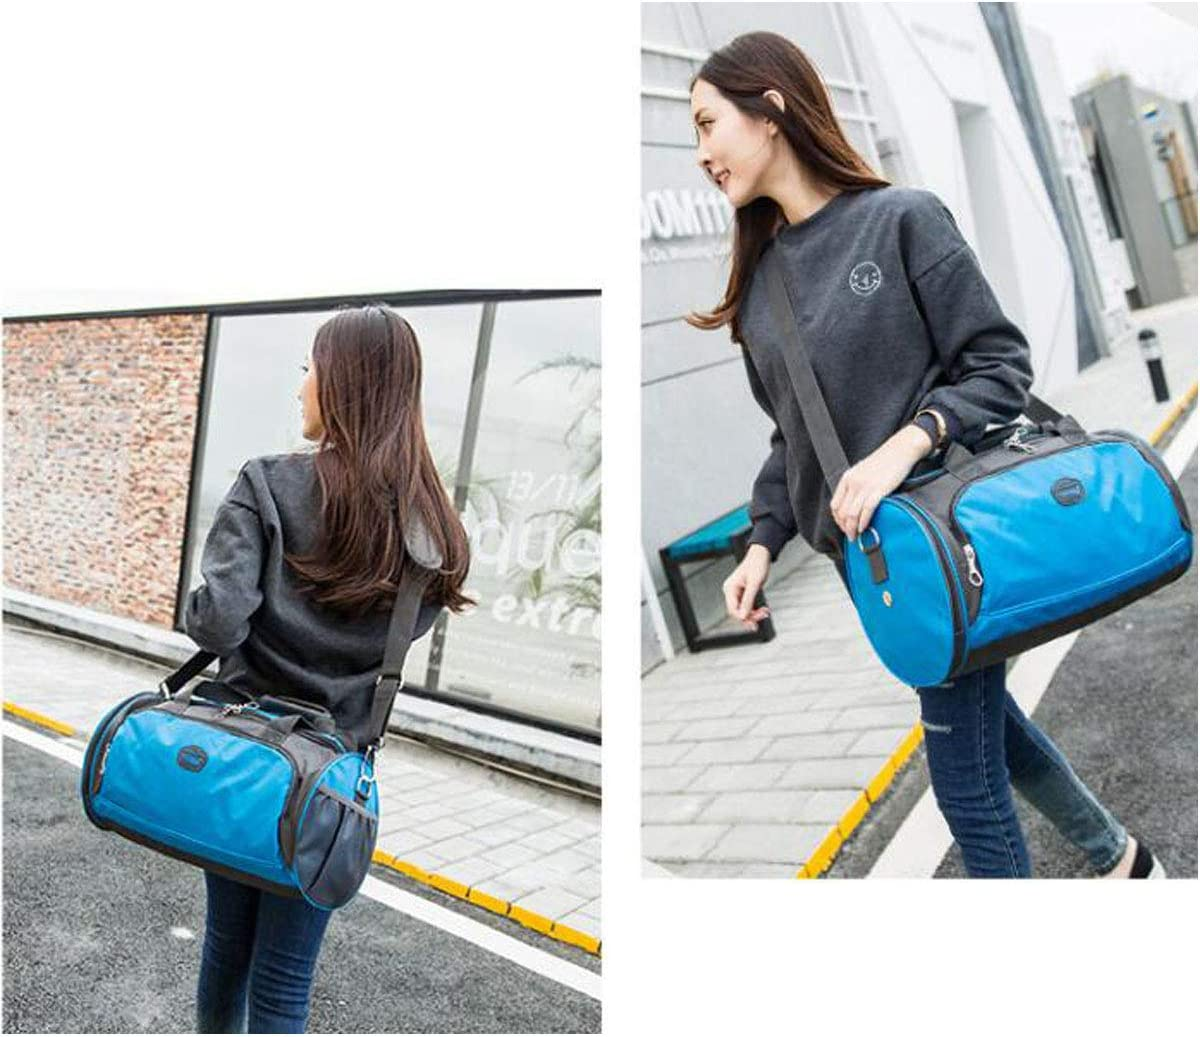 Yoga Bag Large Size: 452626 Color : Purple, Size : 169.69.6 incg Fitness Bag Small Travel Bag Dark Blue -811 One-Shoulder Diagonal Training Bag